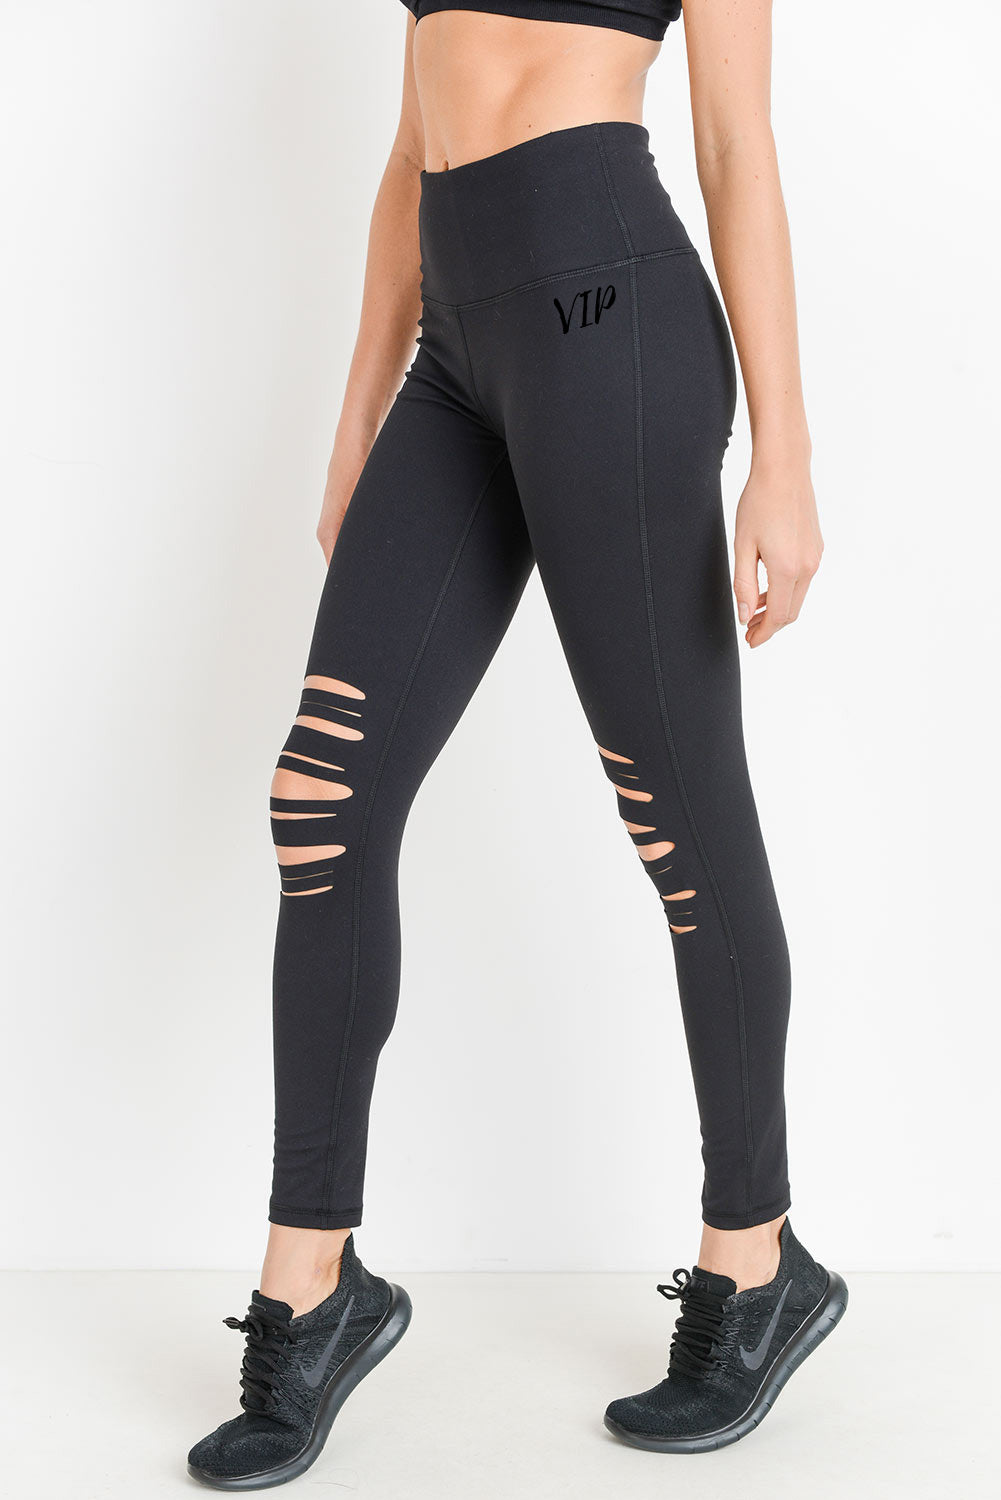 Women's Black Highwaist Shredded Knee Laser Leggings